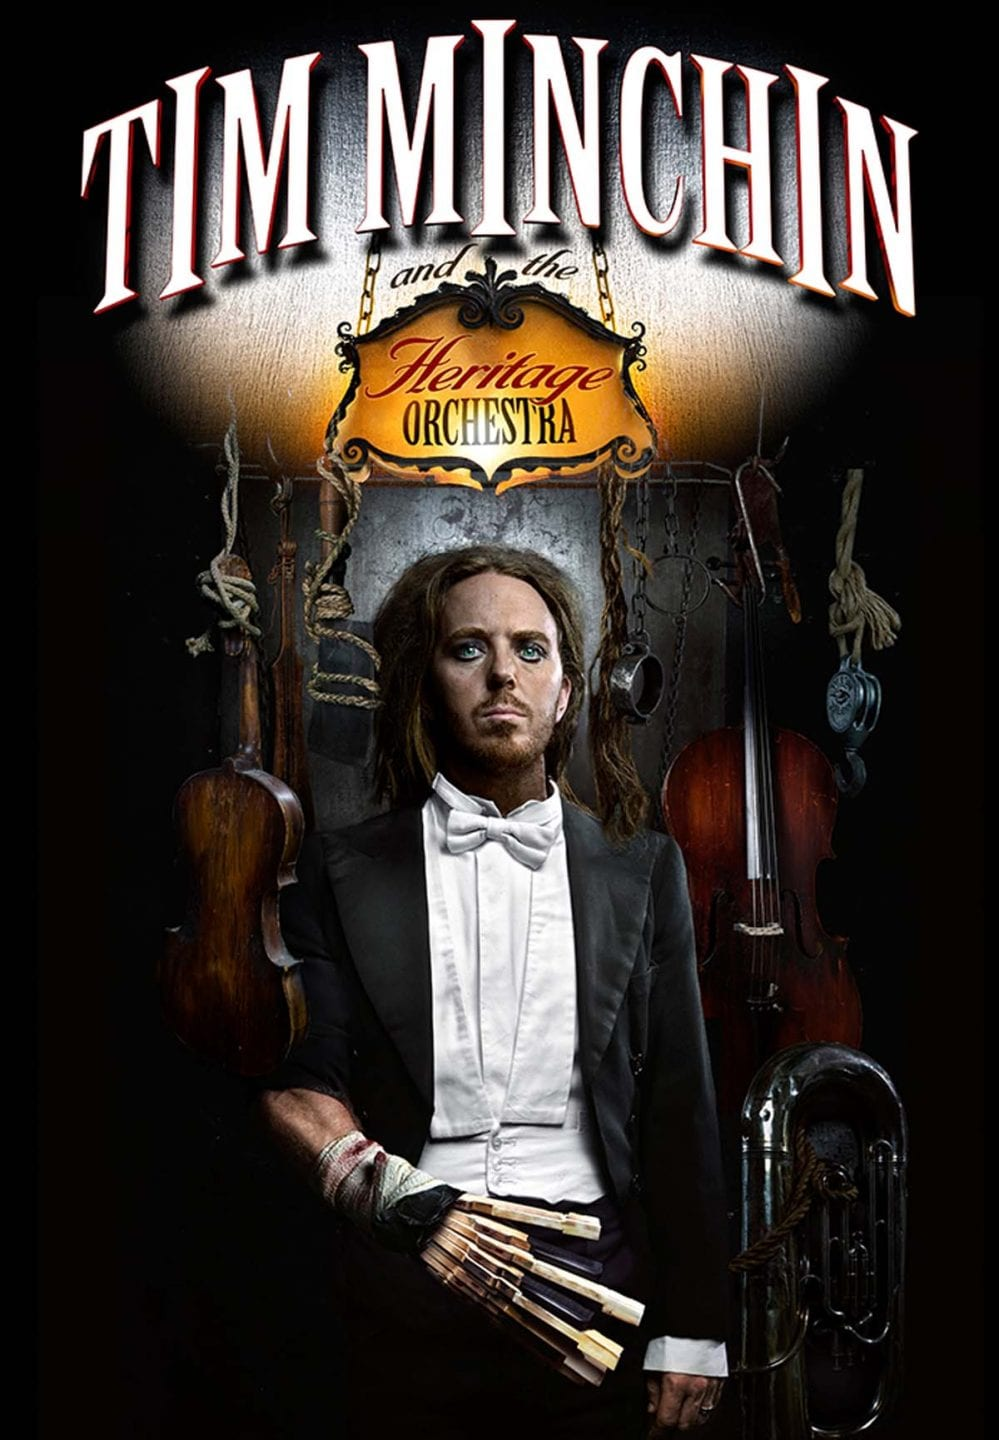 Tim Minchin and the heritage orchestra film